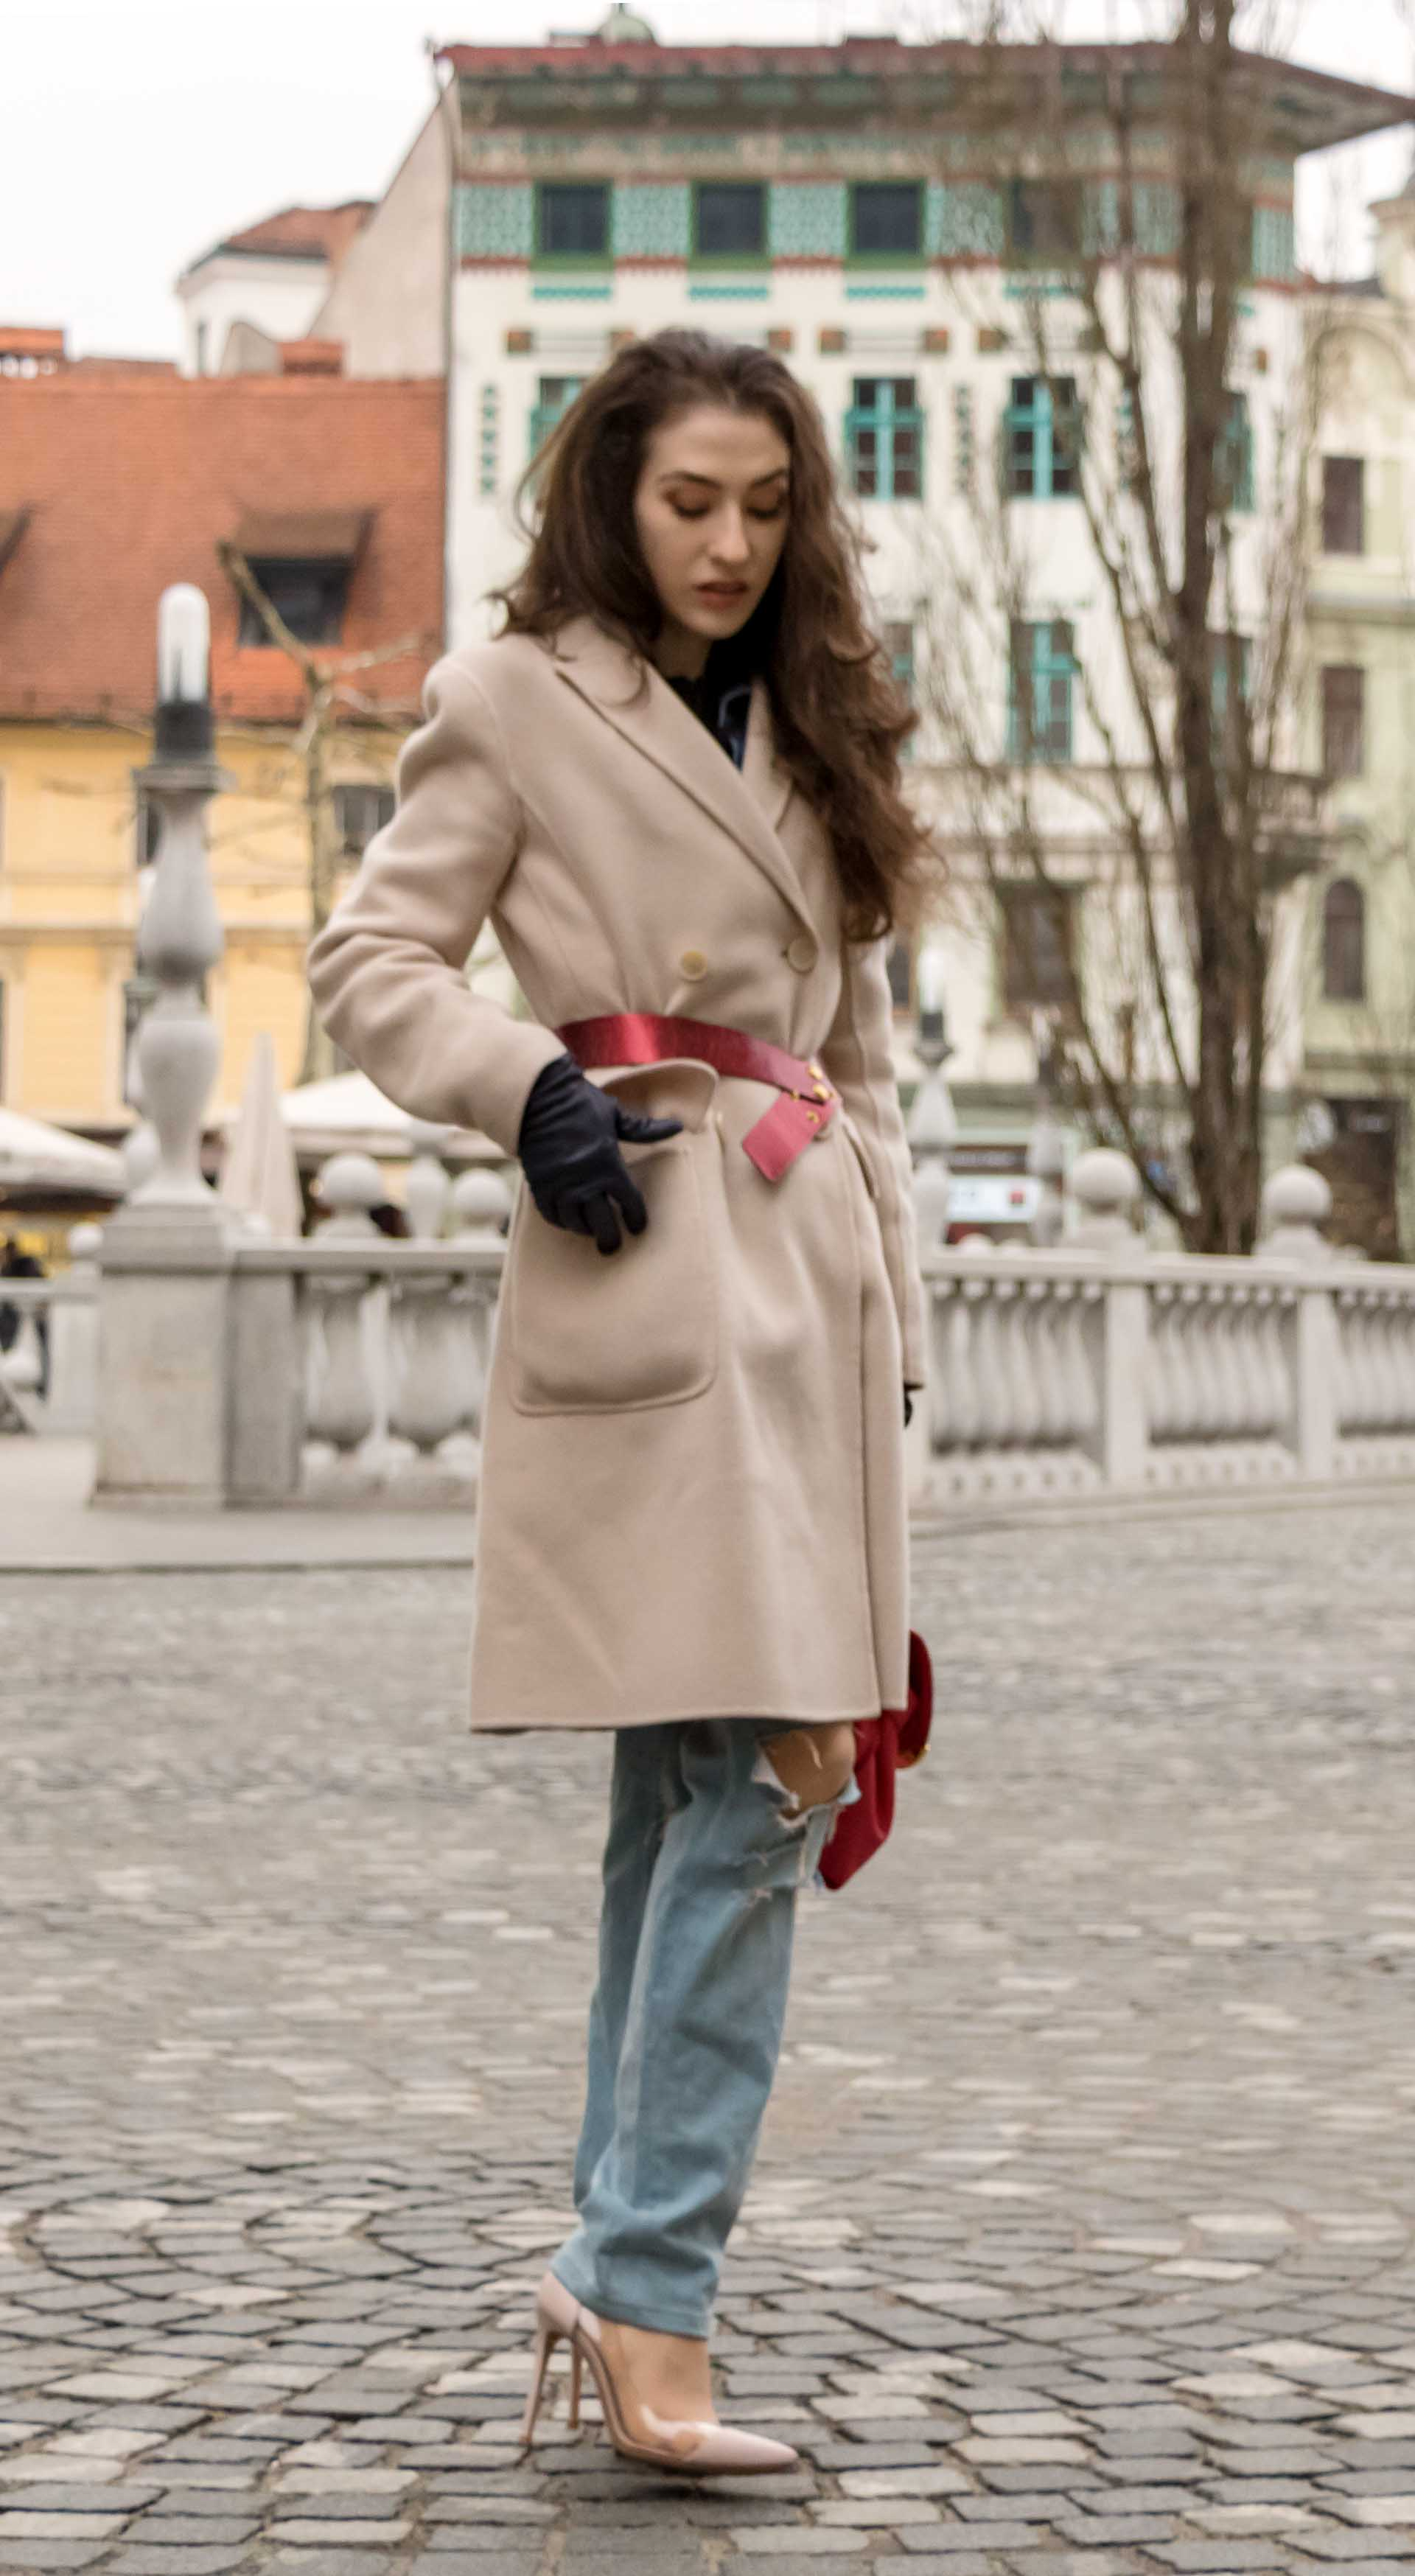 Fashion Blogger Veronika Lipar of Brunette from Wall Street dressed in distressed blue Levi's jeans, off-white double breasted Weekend Maxmara coat, red dangling belt, blush Gianvito Rossi plexi pumps, See by Chloe pink top handle bag, blue leather gloves reaching her pocket